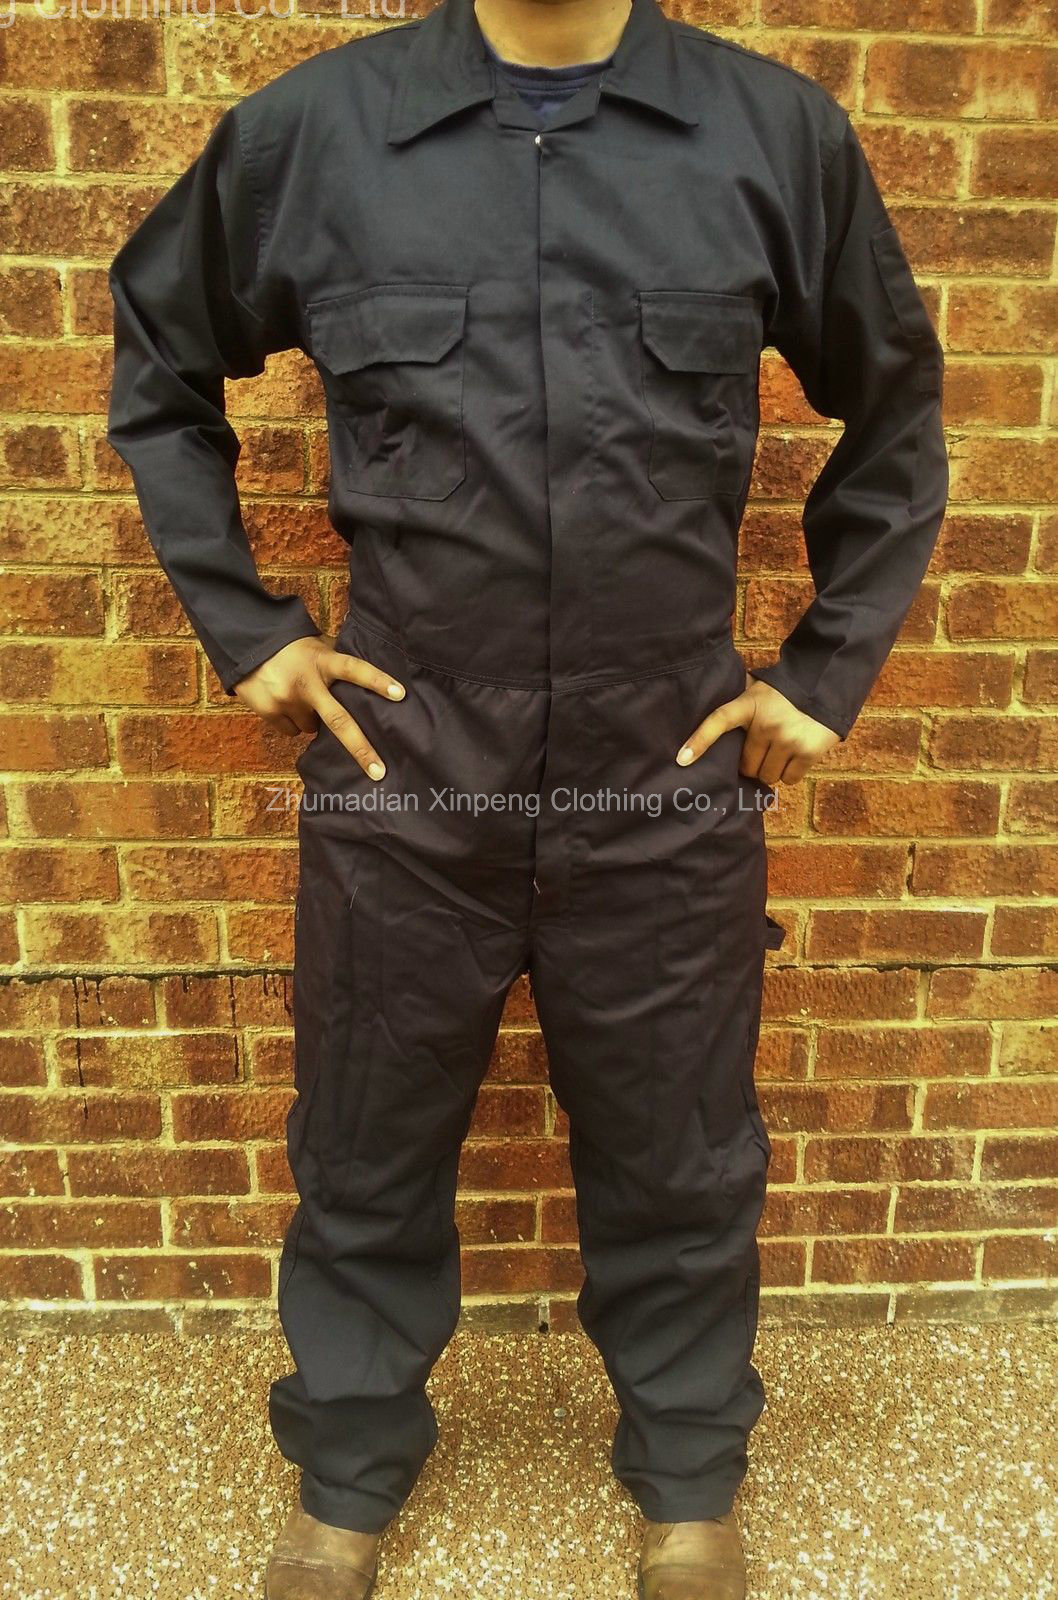 Basic Design Coverall Safety Uniform T/C65/35 190GSM Fabric